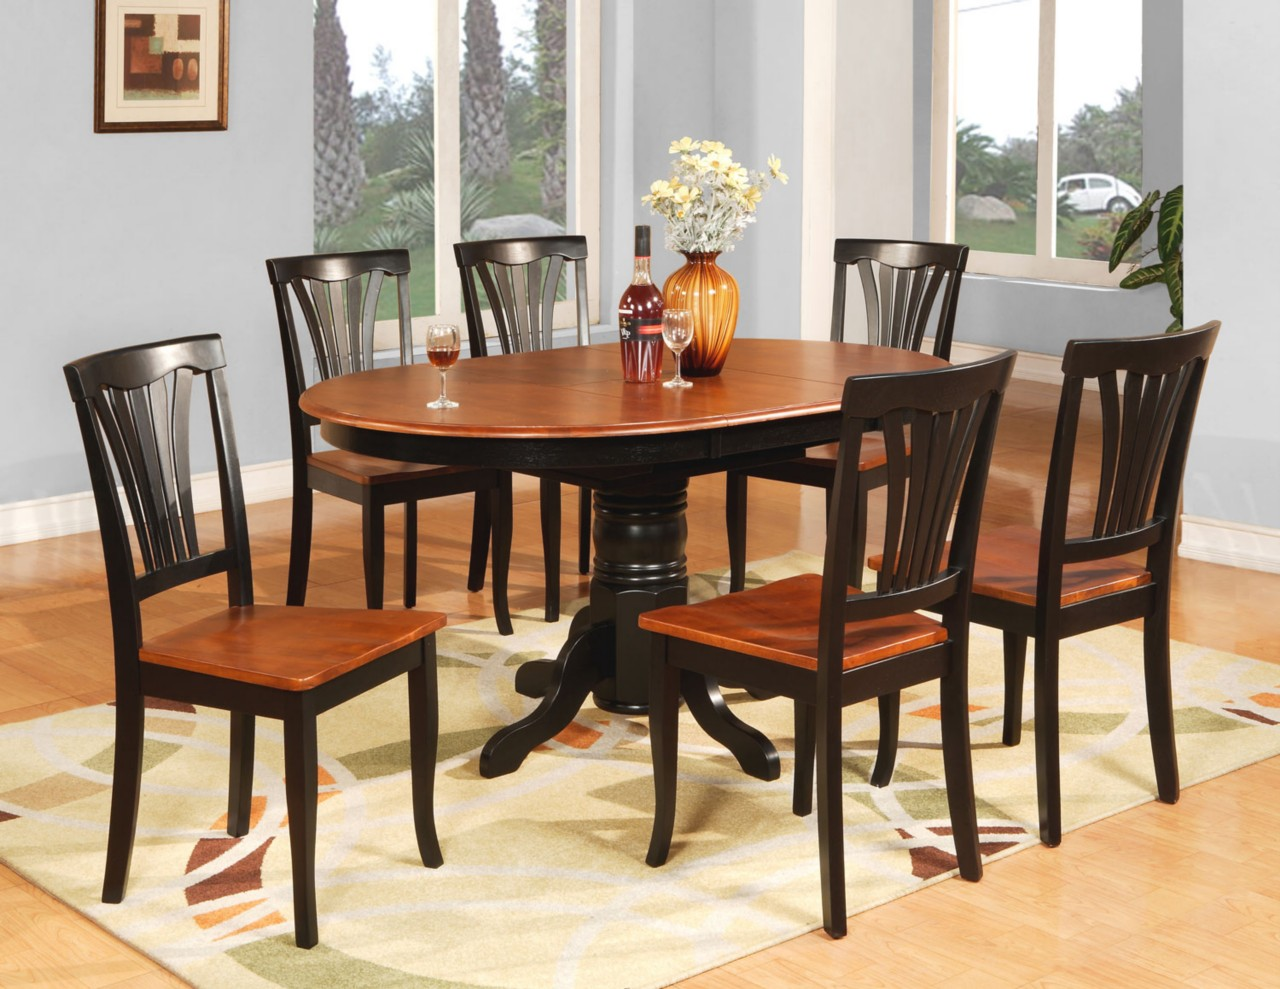 7 pc oval dinette kitchen dining room table 6 chairs ebay for Kitchen dinette sets